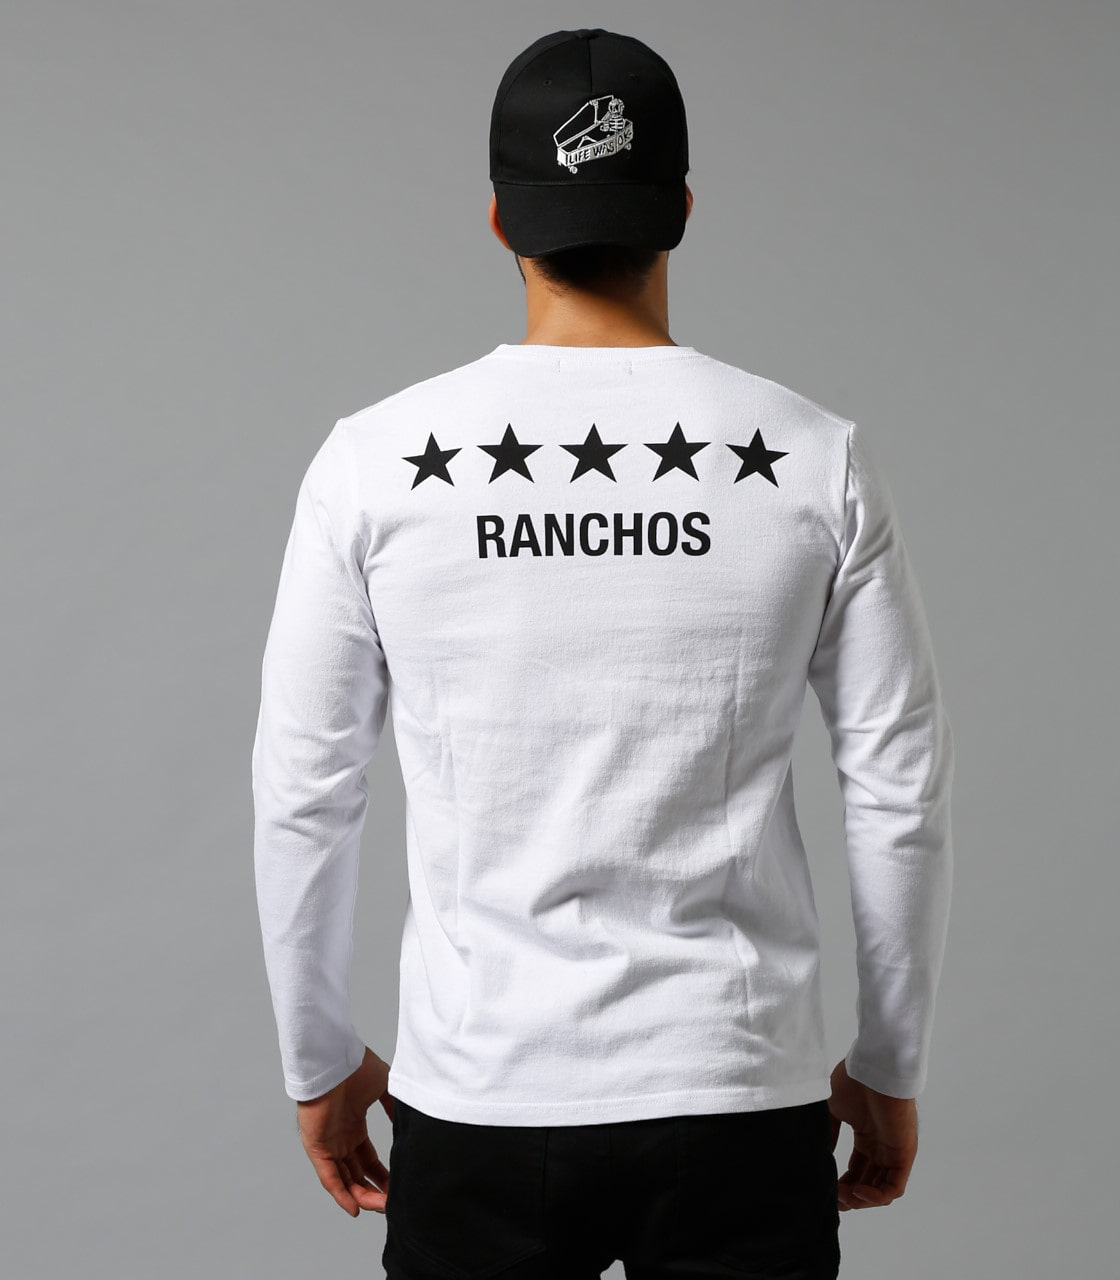 【AZUL BY MOUSSY】RANCHOS Vネック長袖T 詳細画像 WHT 7